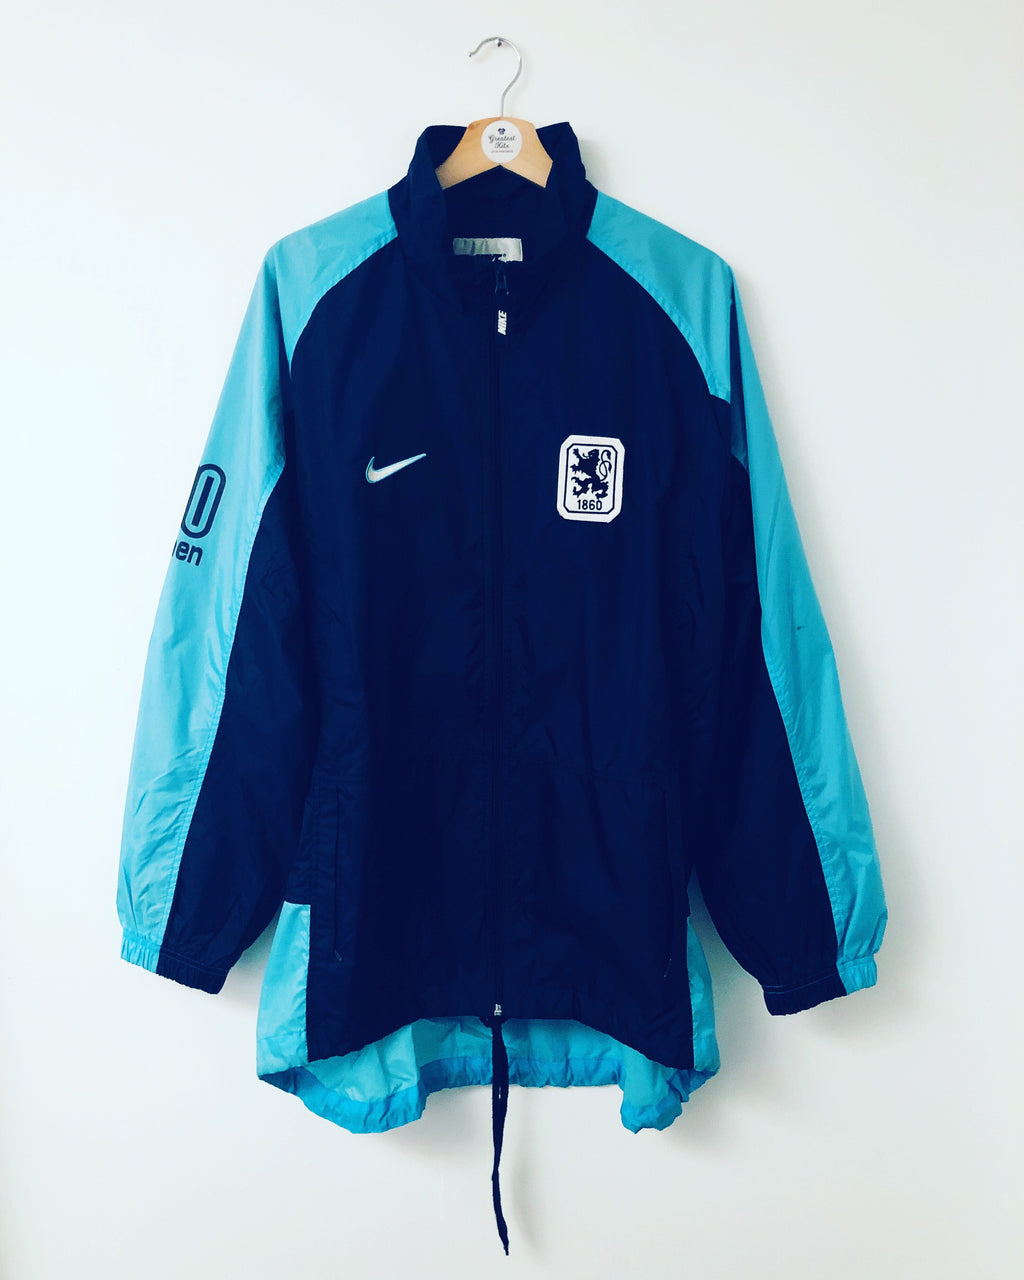 1997/98 1860 Munich Training Jacket (XL) 8.5/10